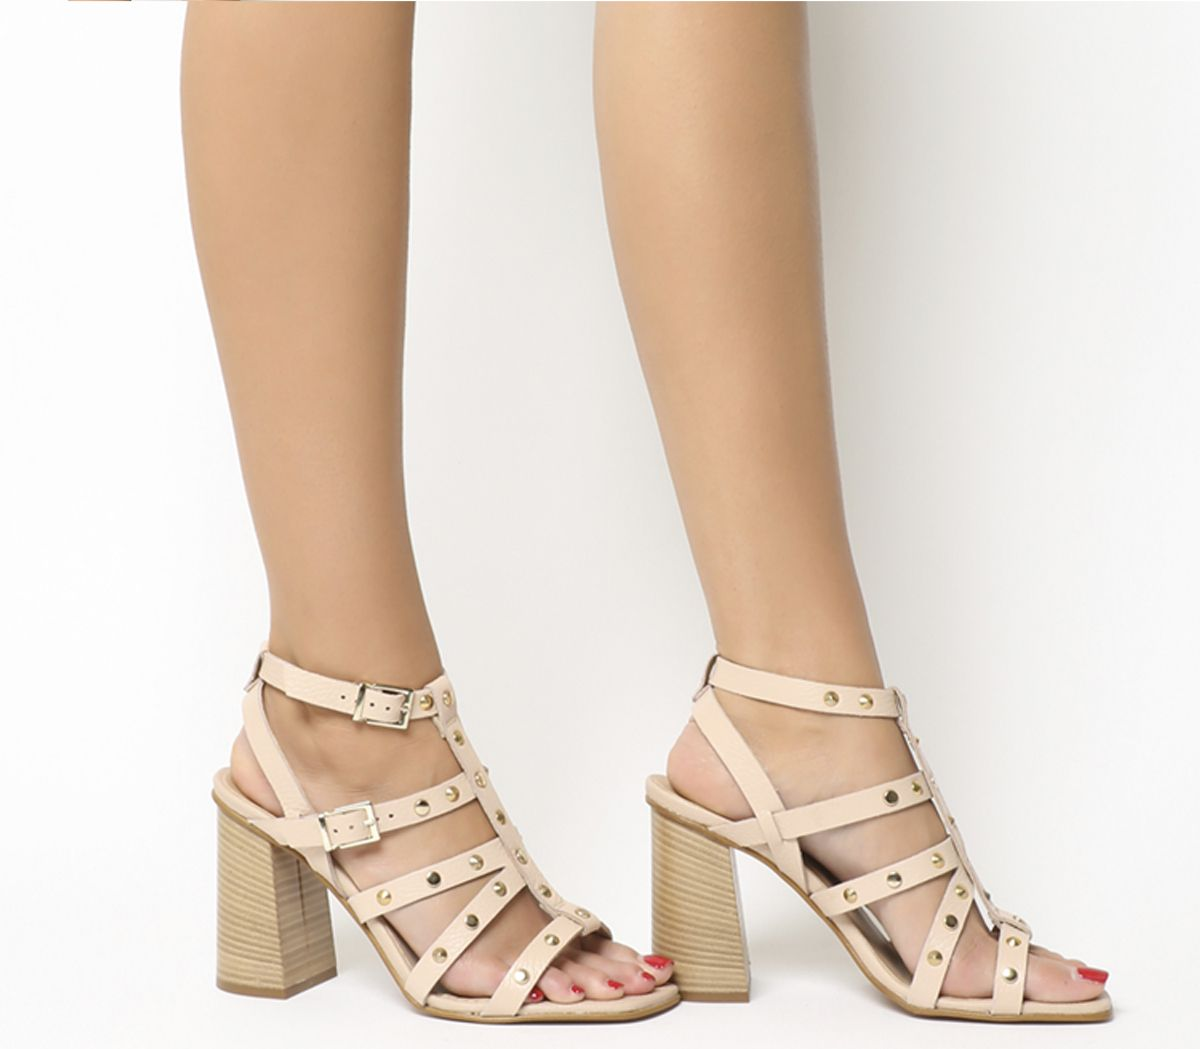 d89ad1c96ca Office Herring Studded Strappy Block Heels Nude Leather - High Heels